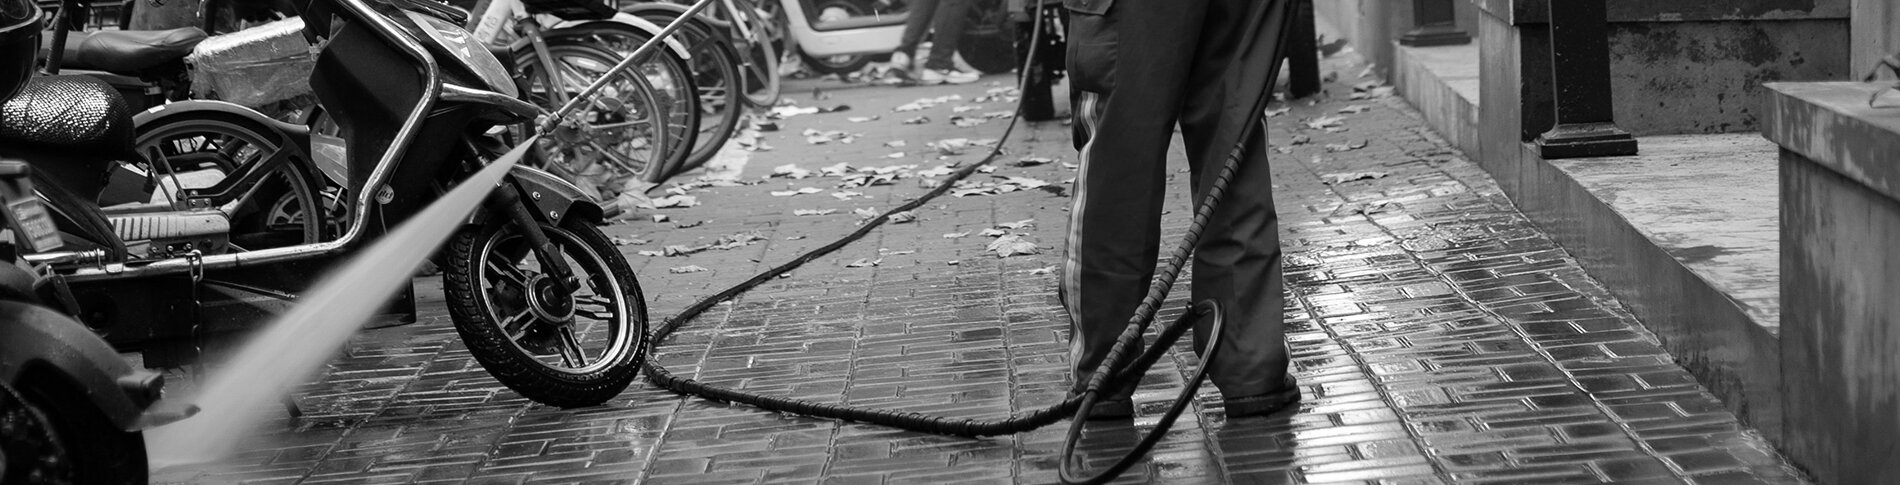 STREET CLEANERS & WASTE MANAGEMENT SOLUTION